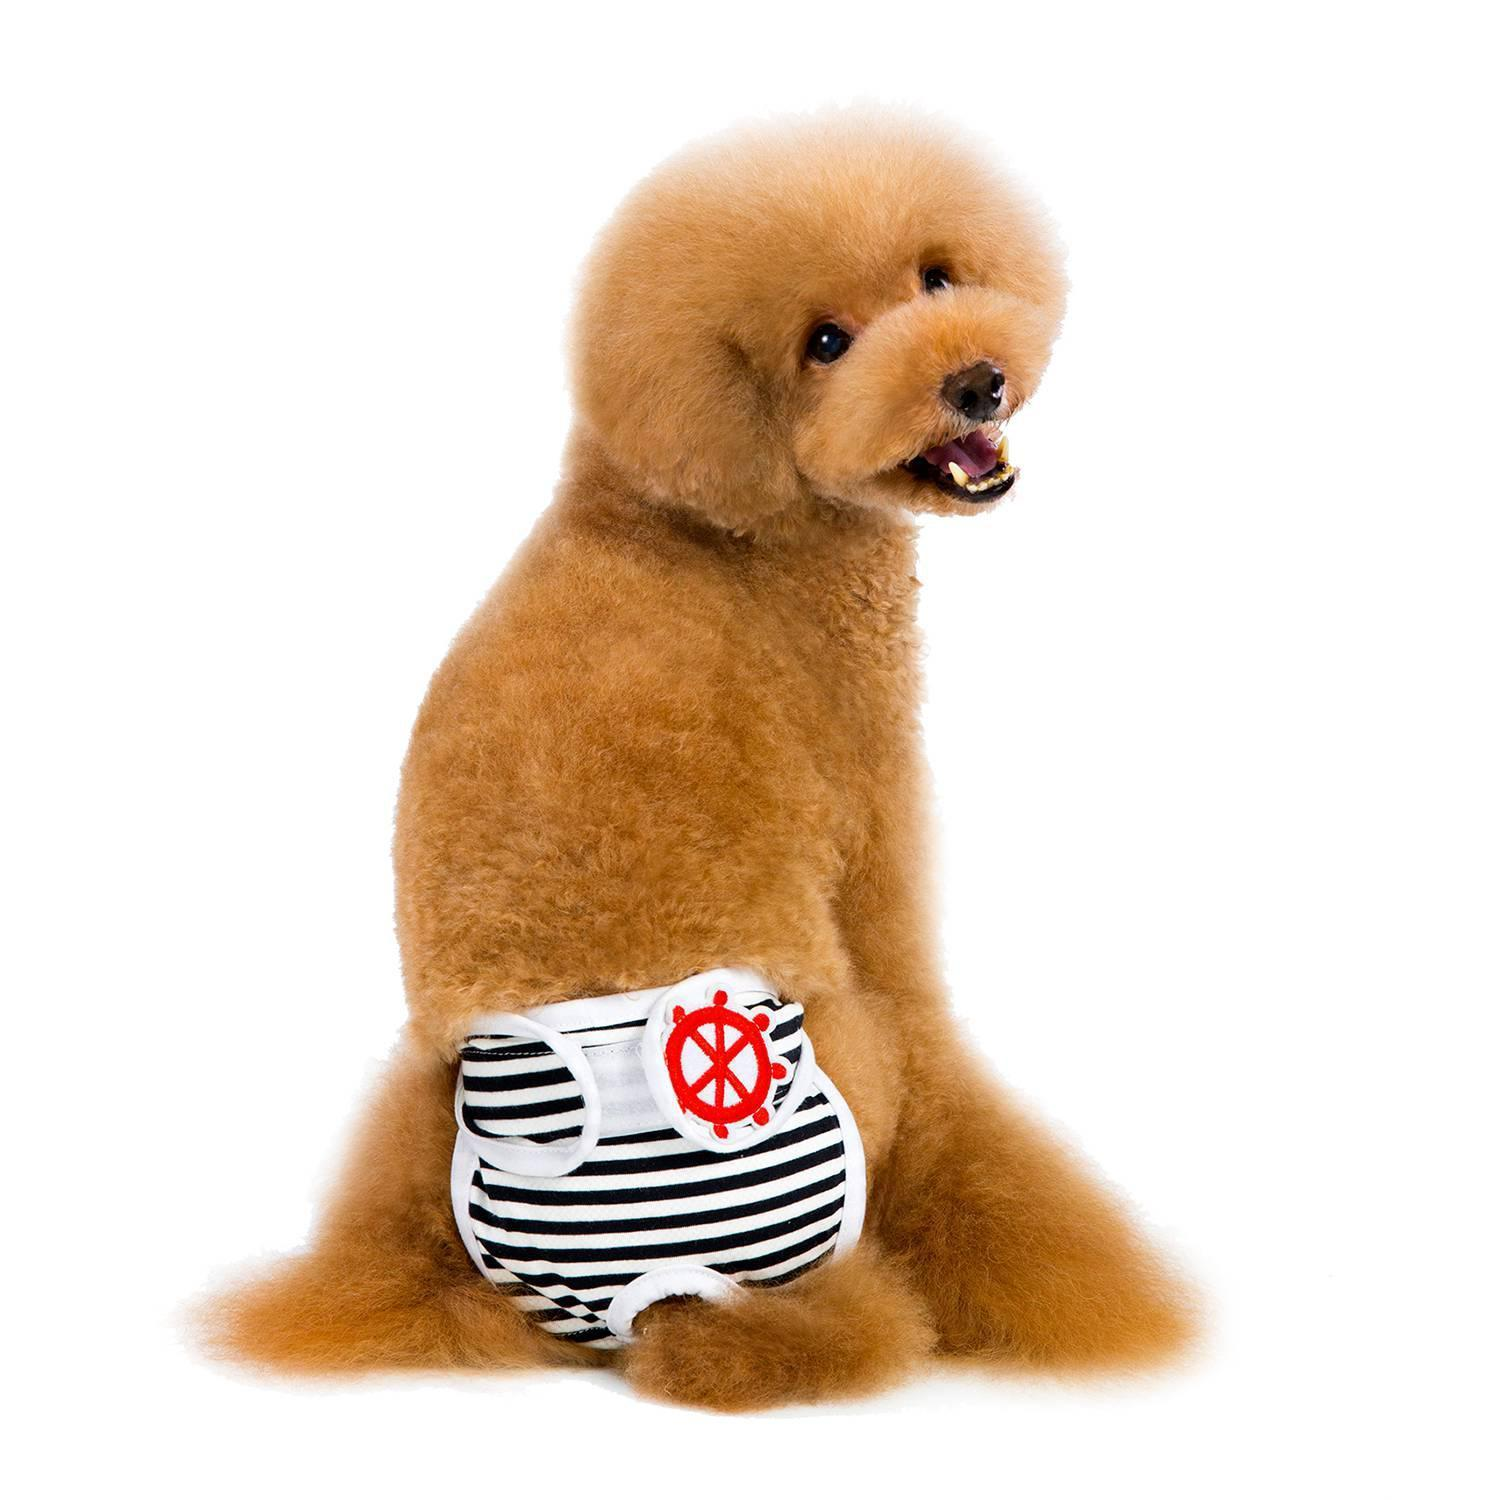 Goglor Pawaca Reusable Washable Dog Diapers of Durable Doggie Diapers,Comfy  And Stylish Dog Wraps,Luxury Reusable Dog Diapers, for Both Male and